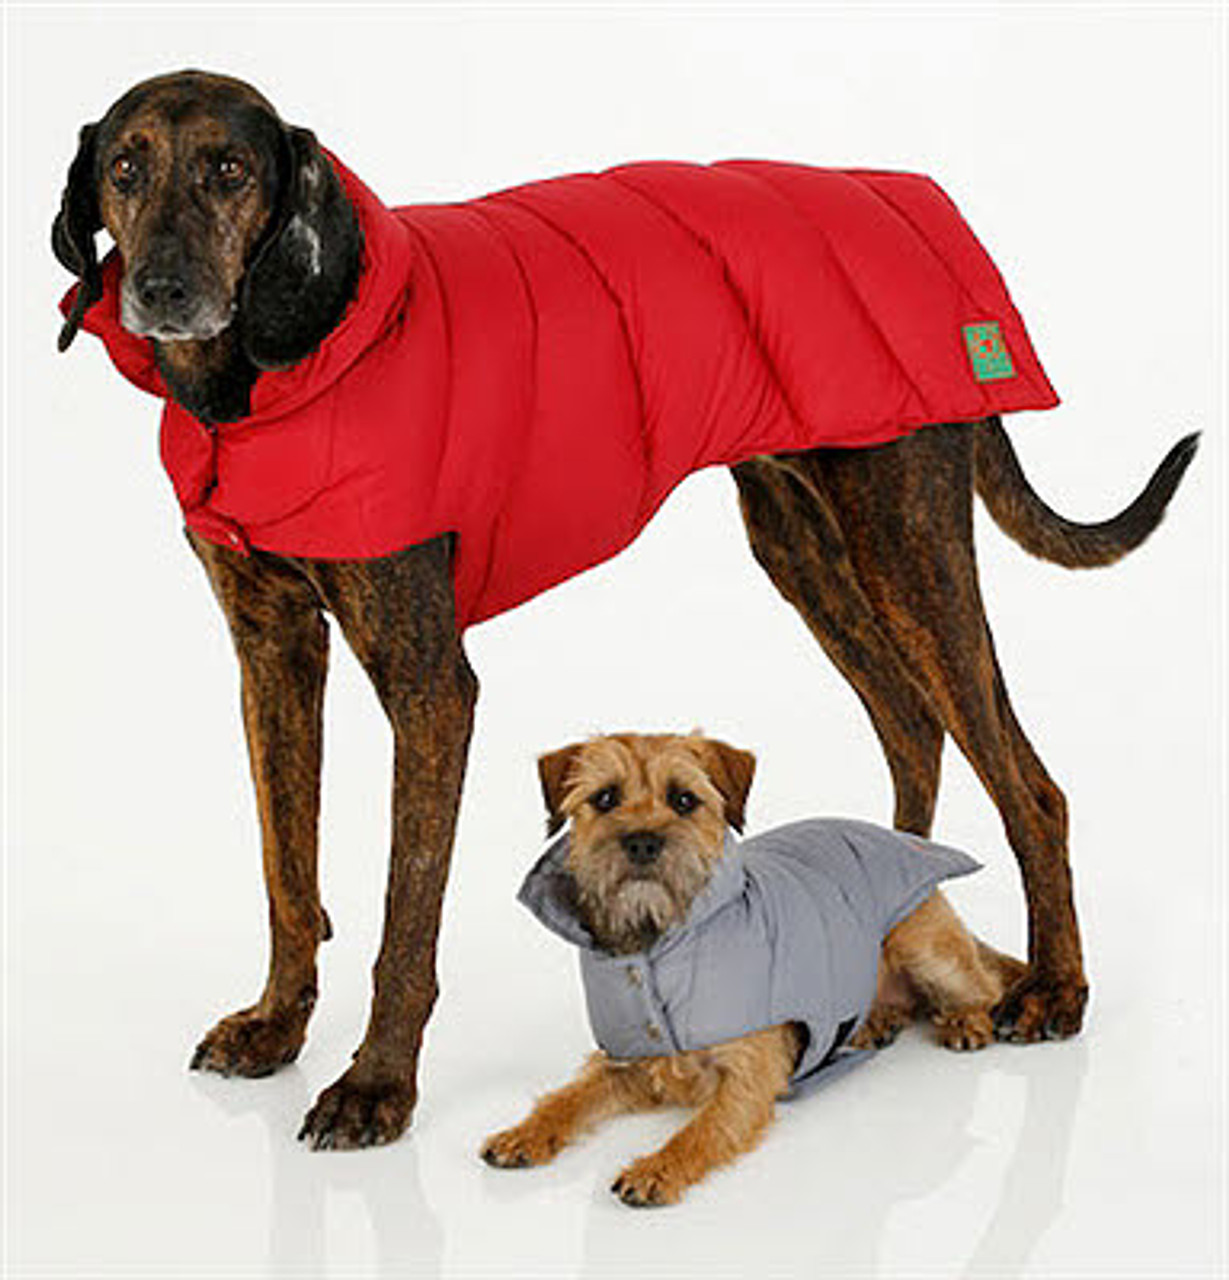 443a2048895 Down Puffer Coat by Canine Styles, Sizes 8 - 28, Small to Large Dog Sizes